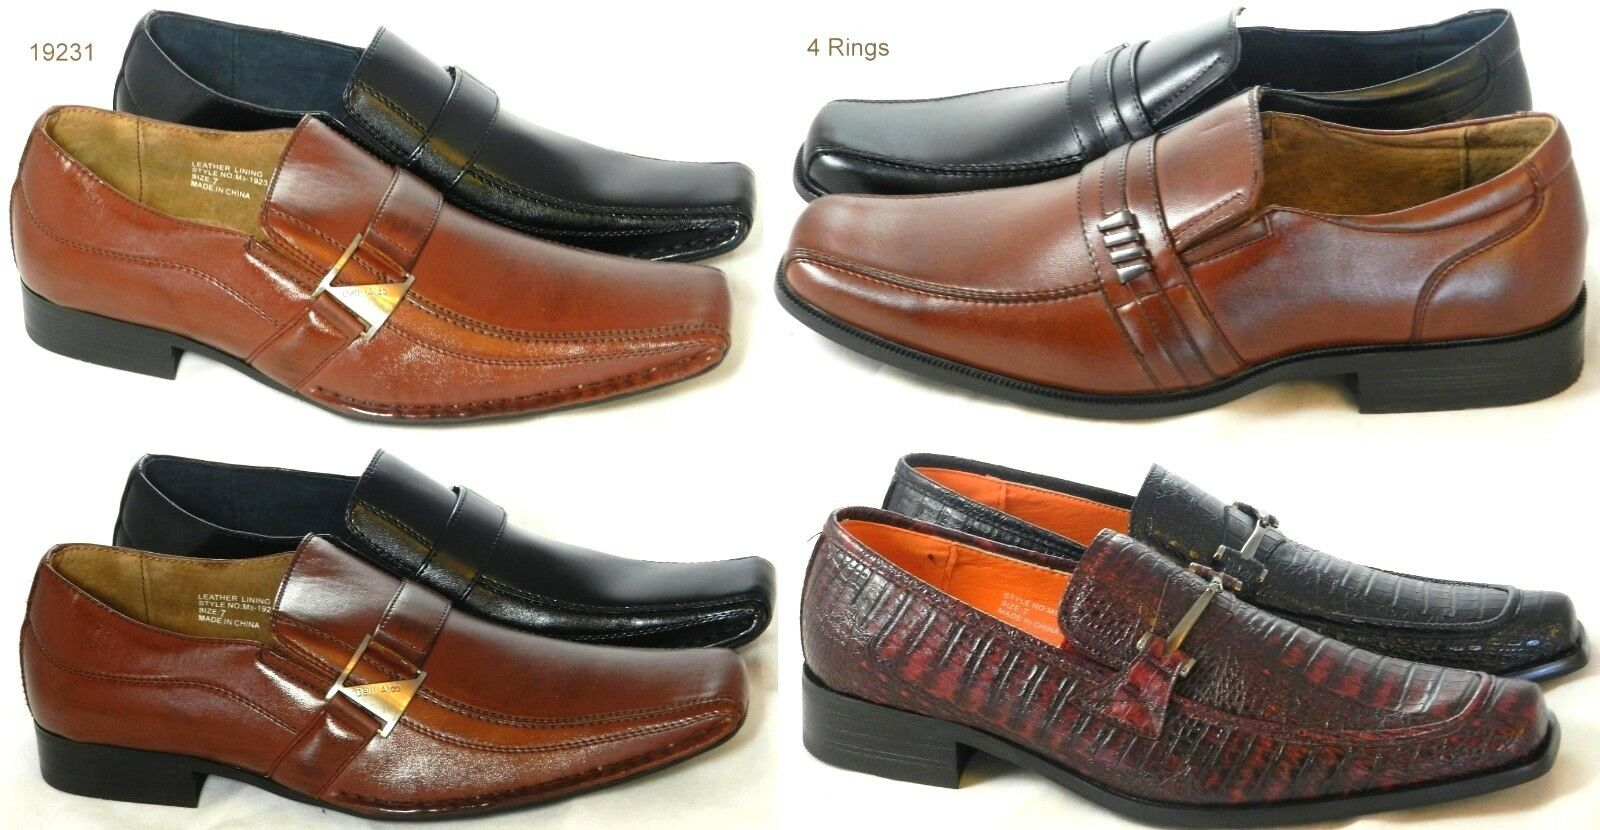 Father's Day Gift Slip on Loafers Dressy Shoes Buckle Long Tapered Front Shoes Dressy Sz 7-12 a4142f